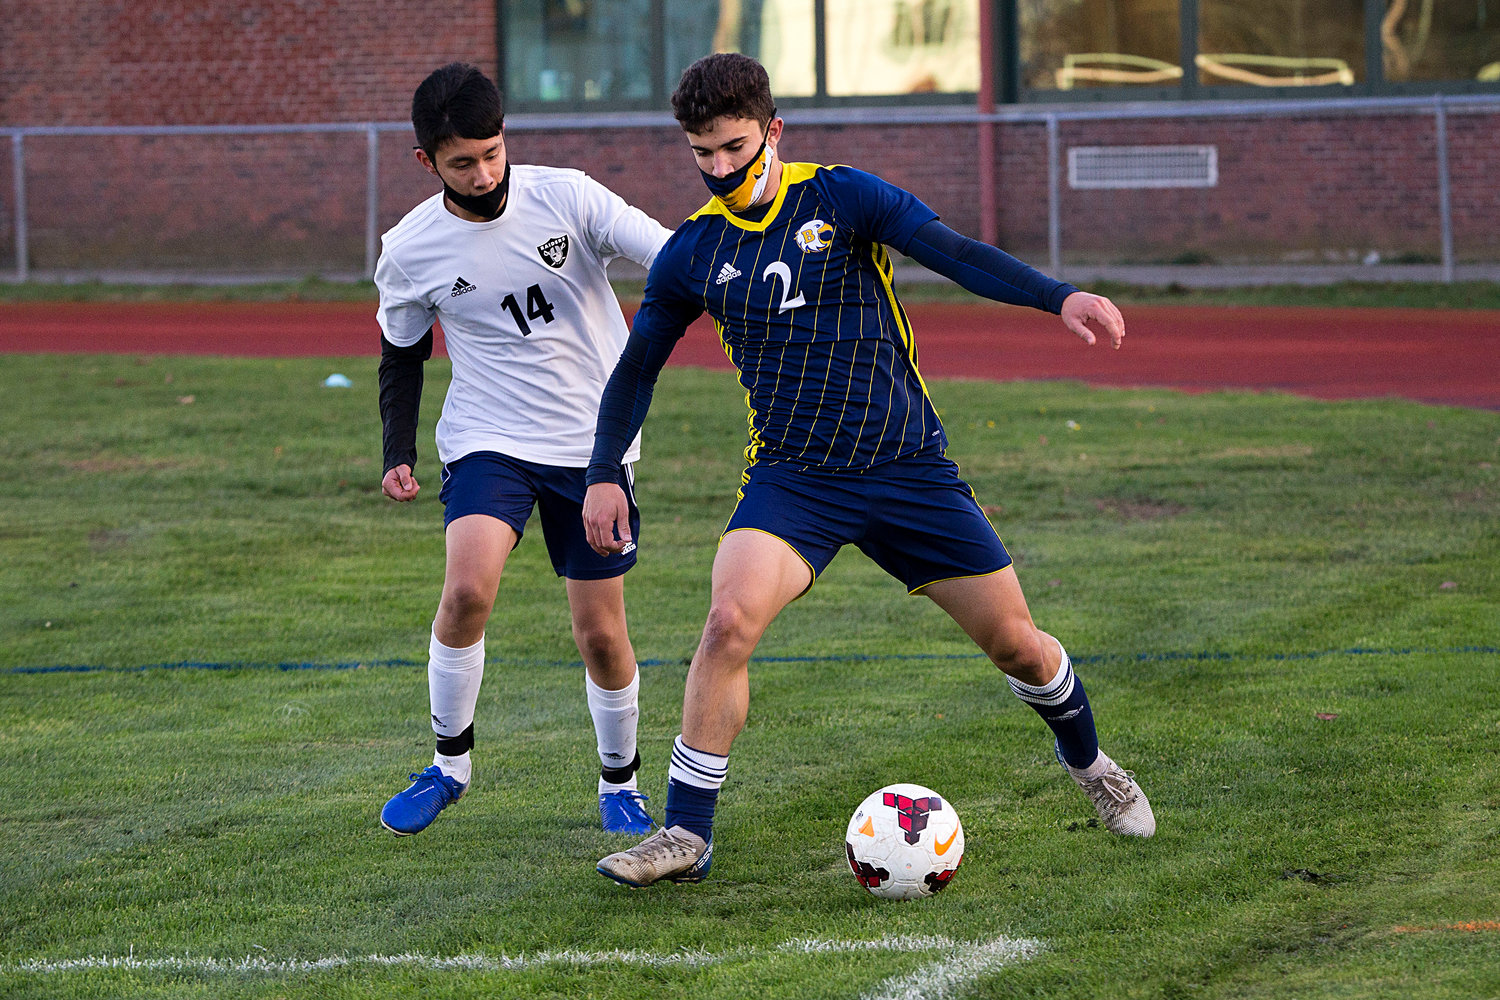 Nico Arce shields the ball from a Shea opponent while keeping it in play, at the corner. Barrington lost to South Kingstown in a playoff game on Monday.